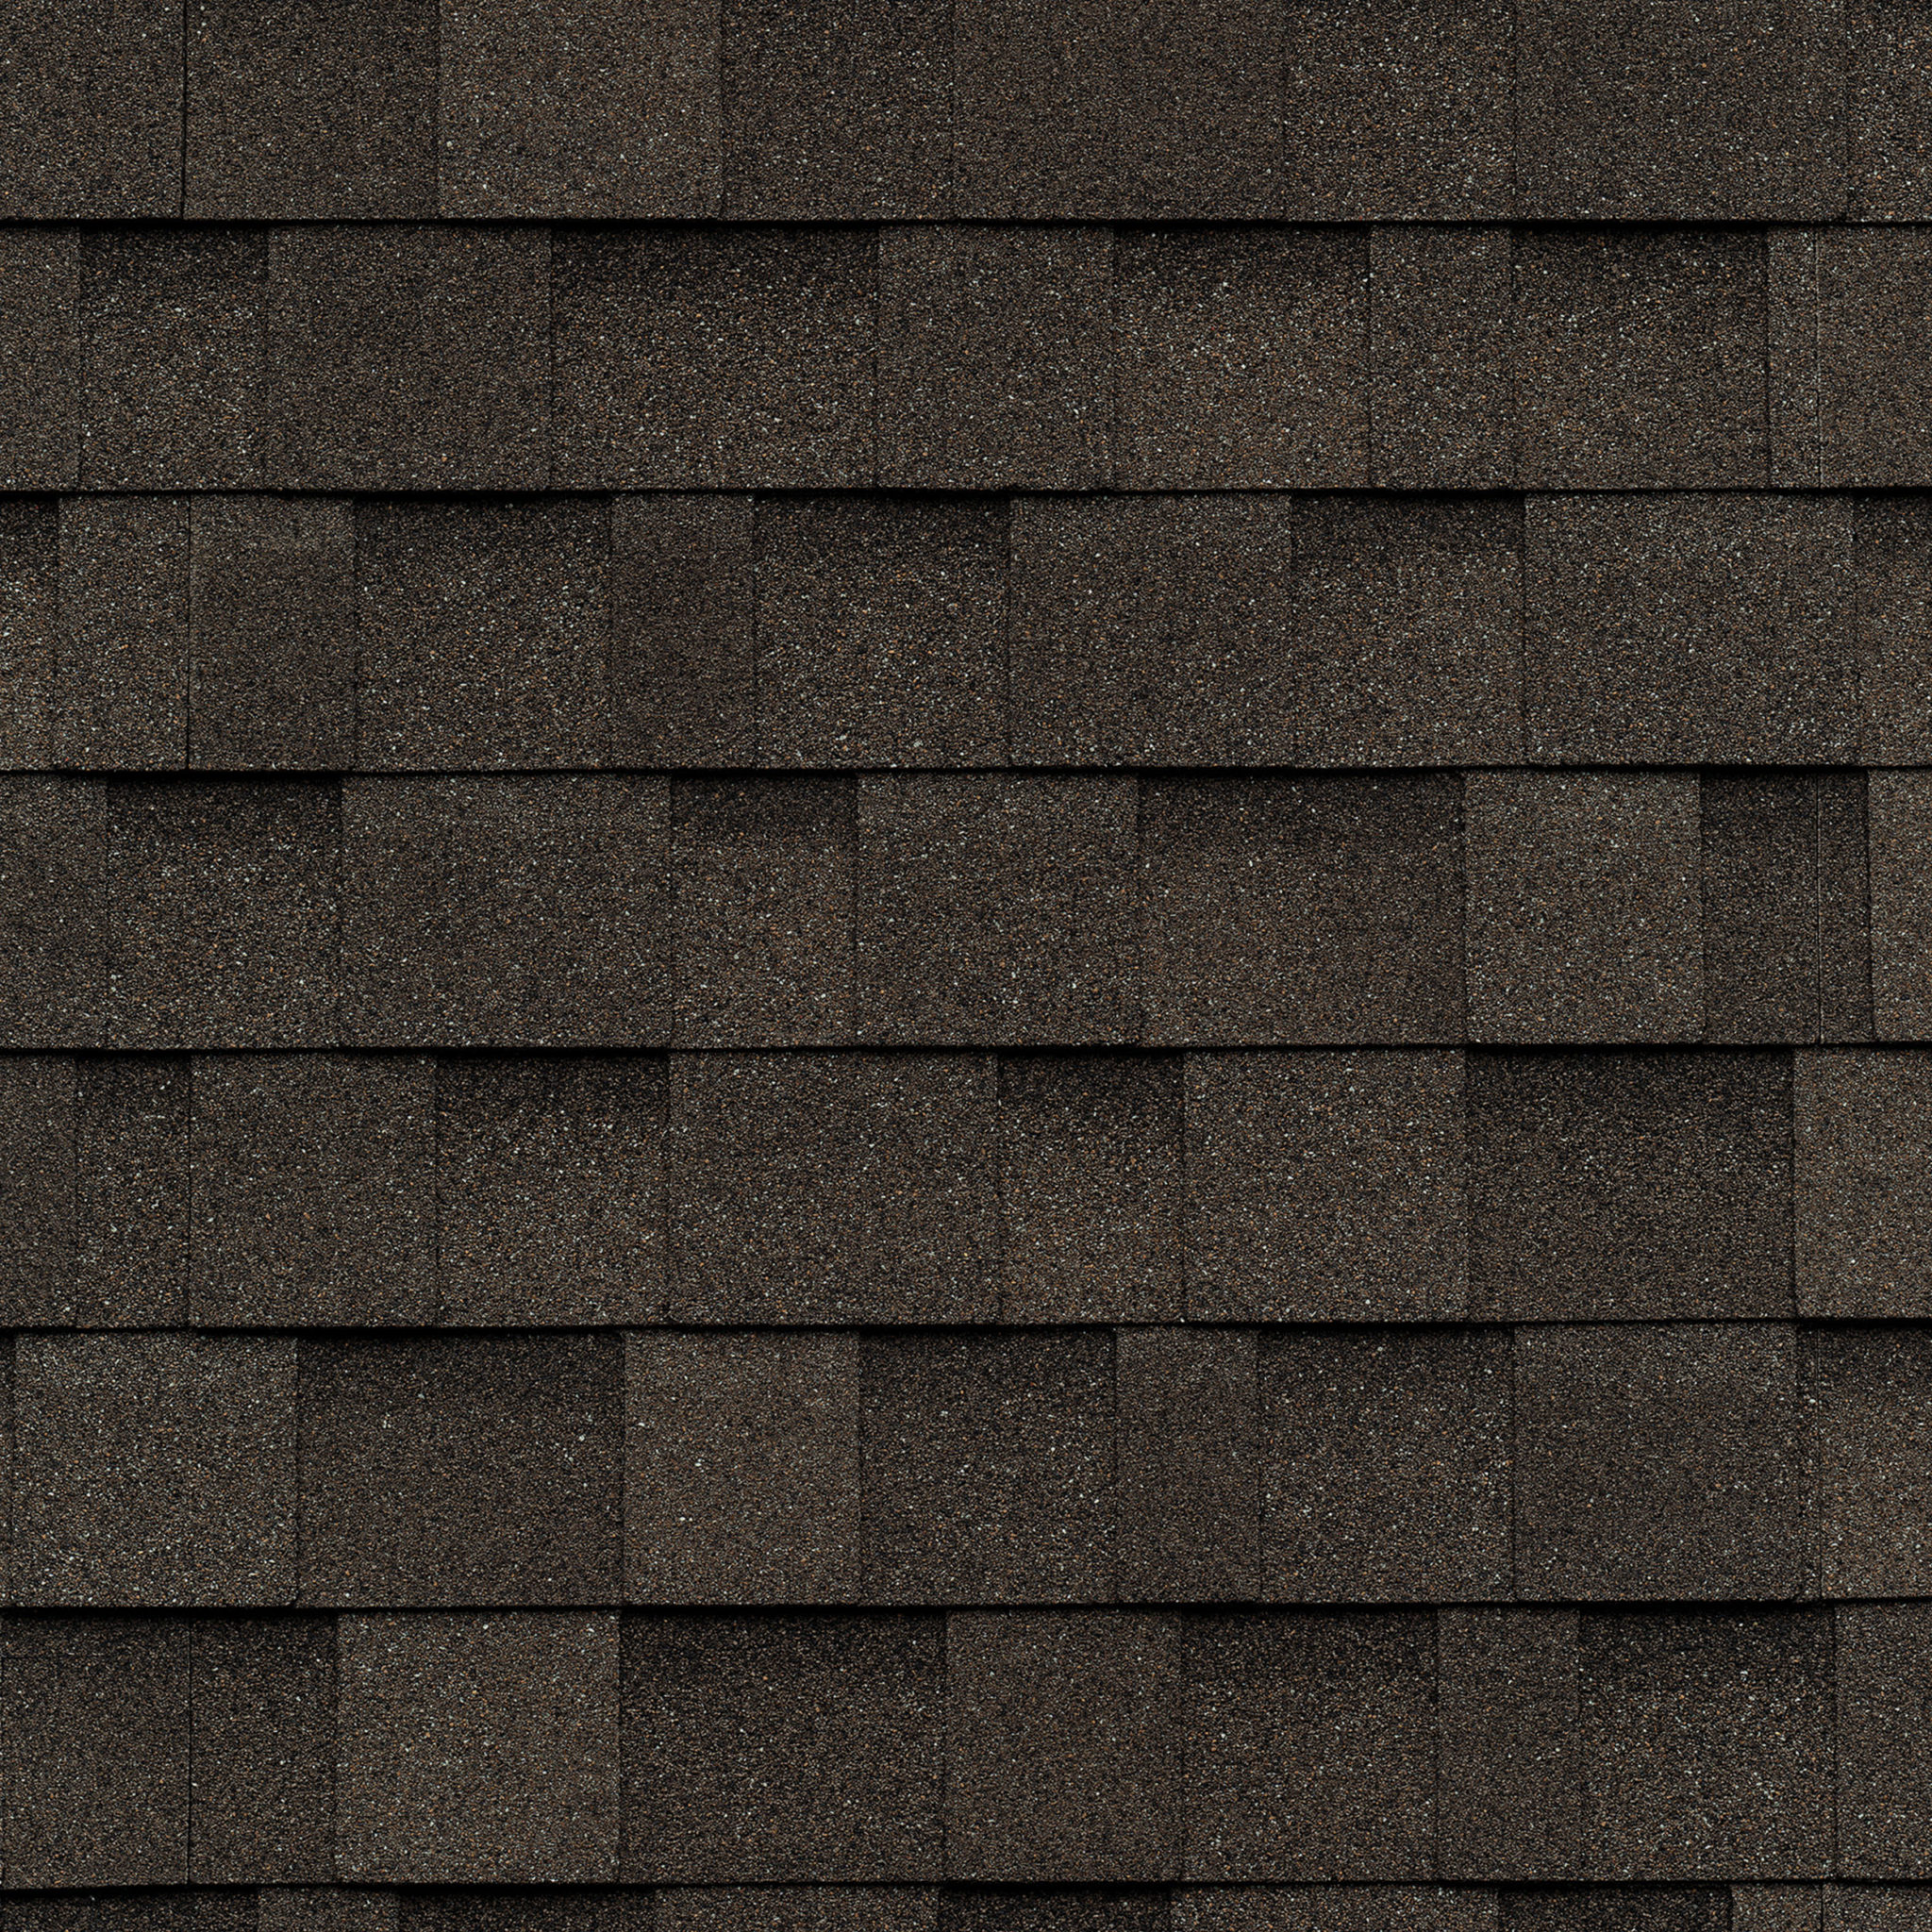 Shingles-Cambridge-Driftwood